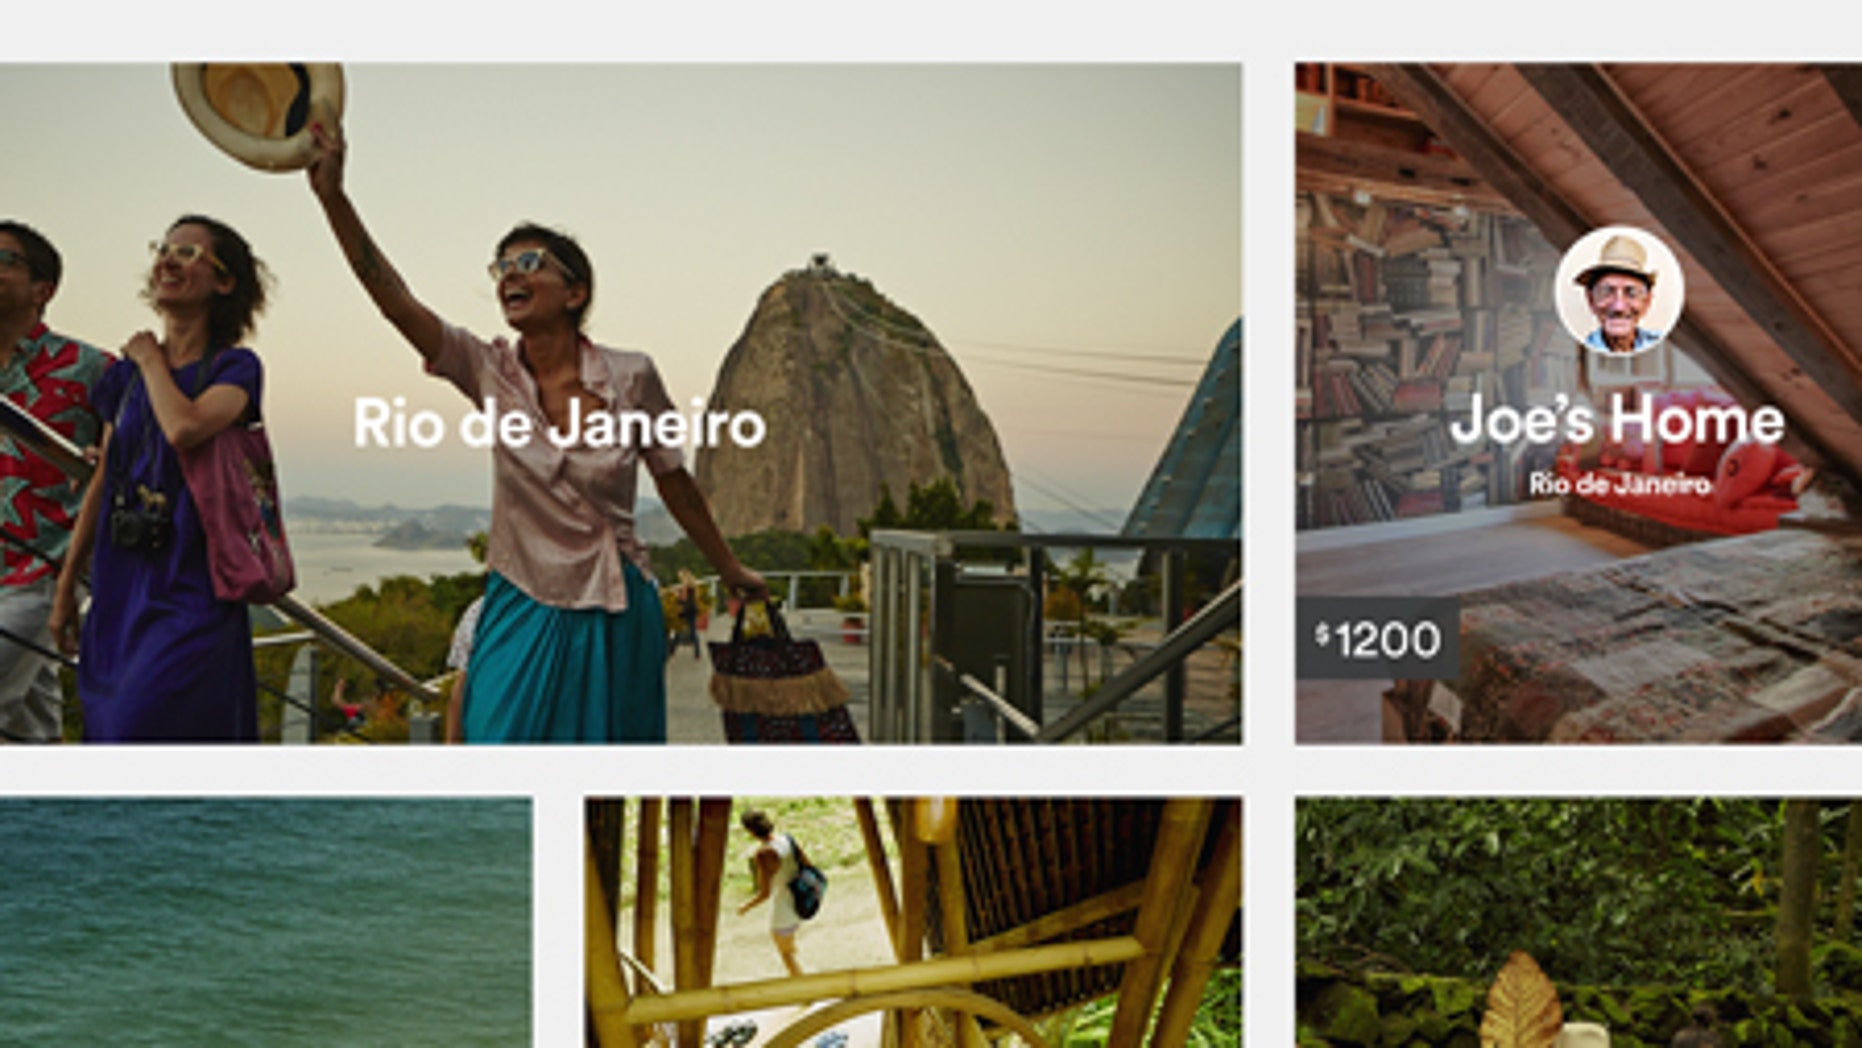 Airbnb says it is taking action to address discrimination through the platform.